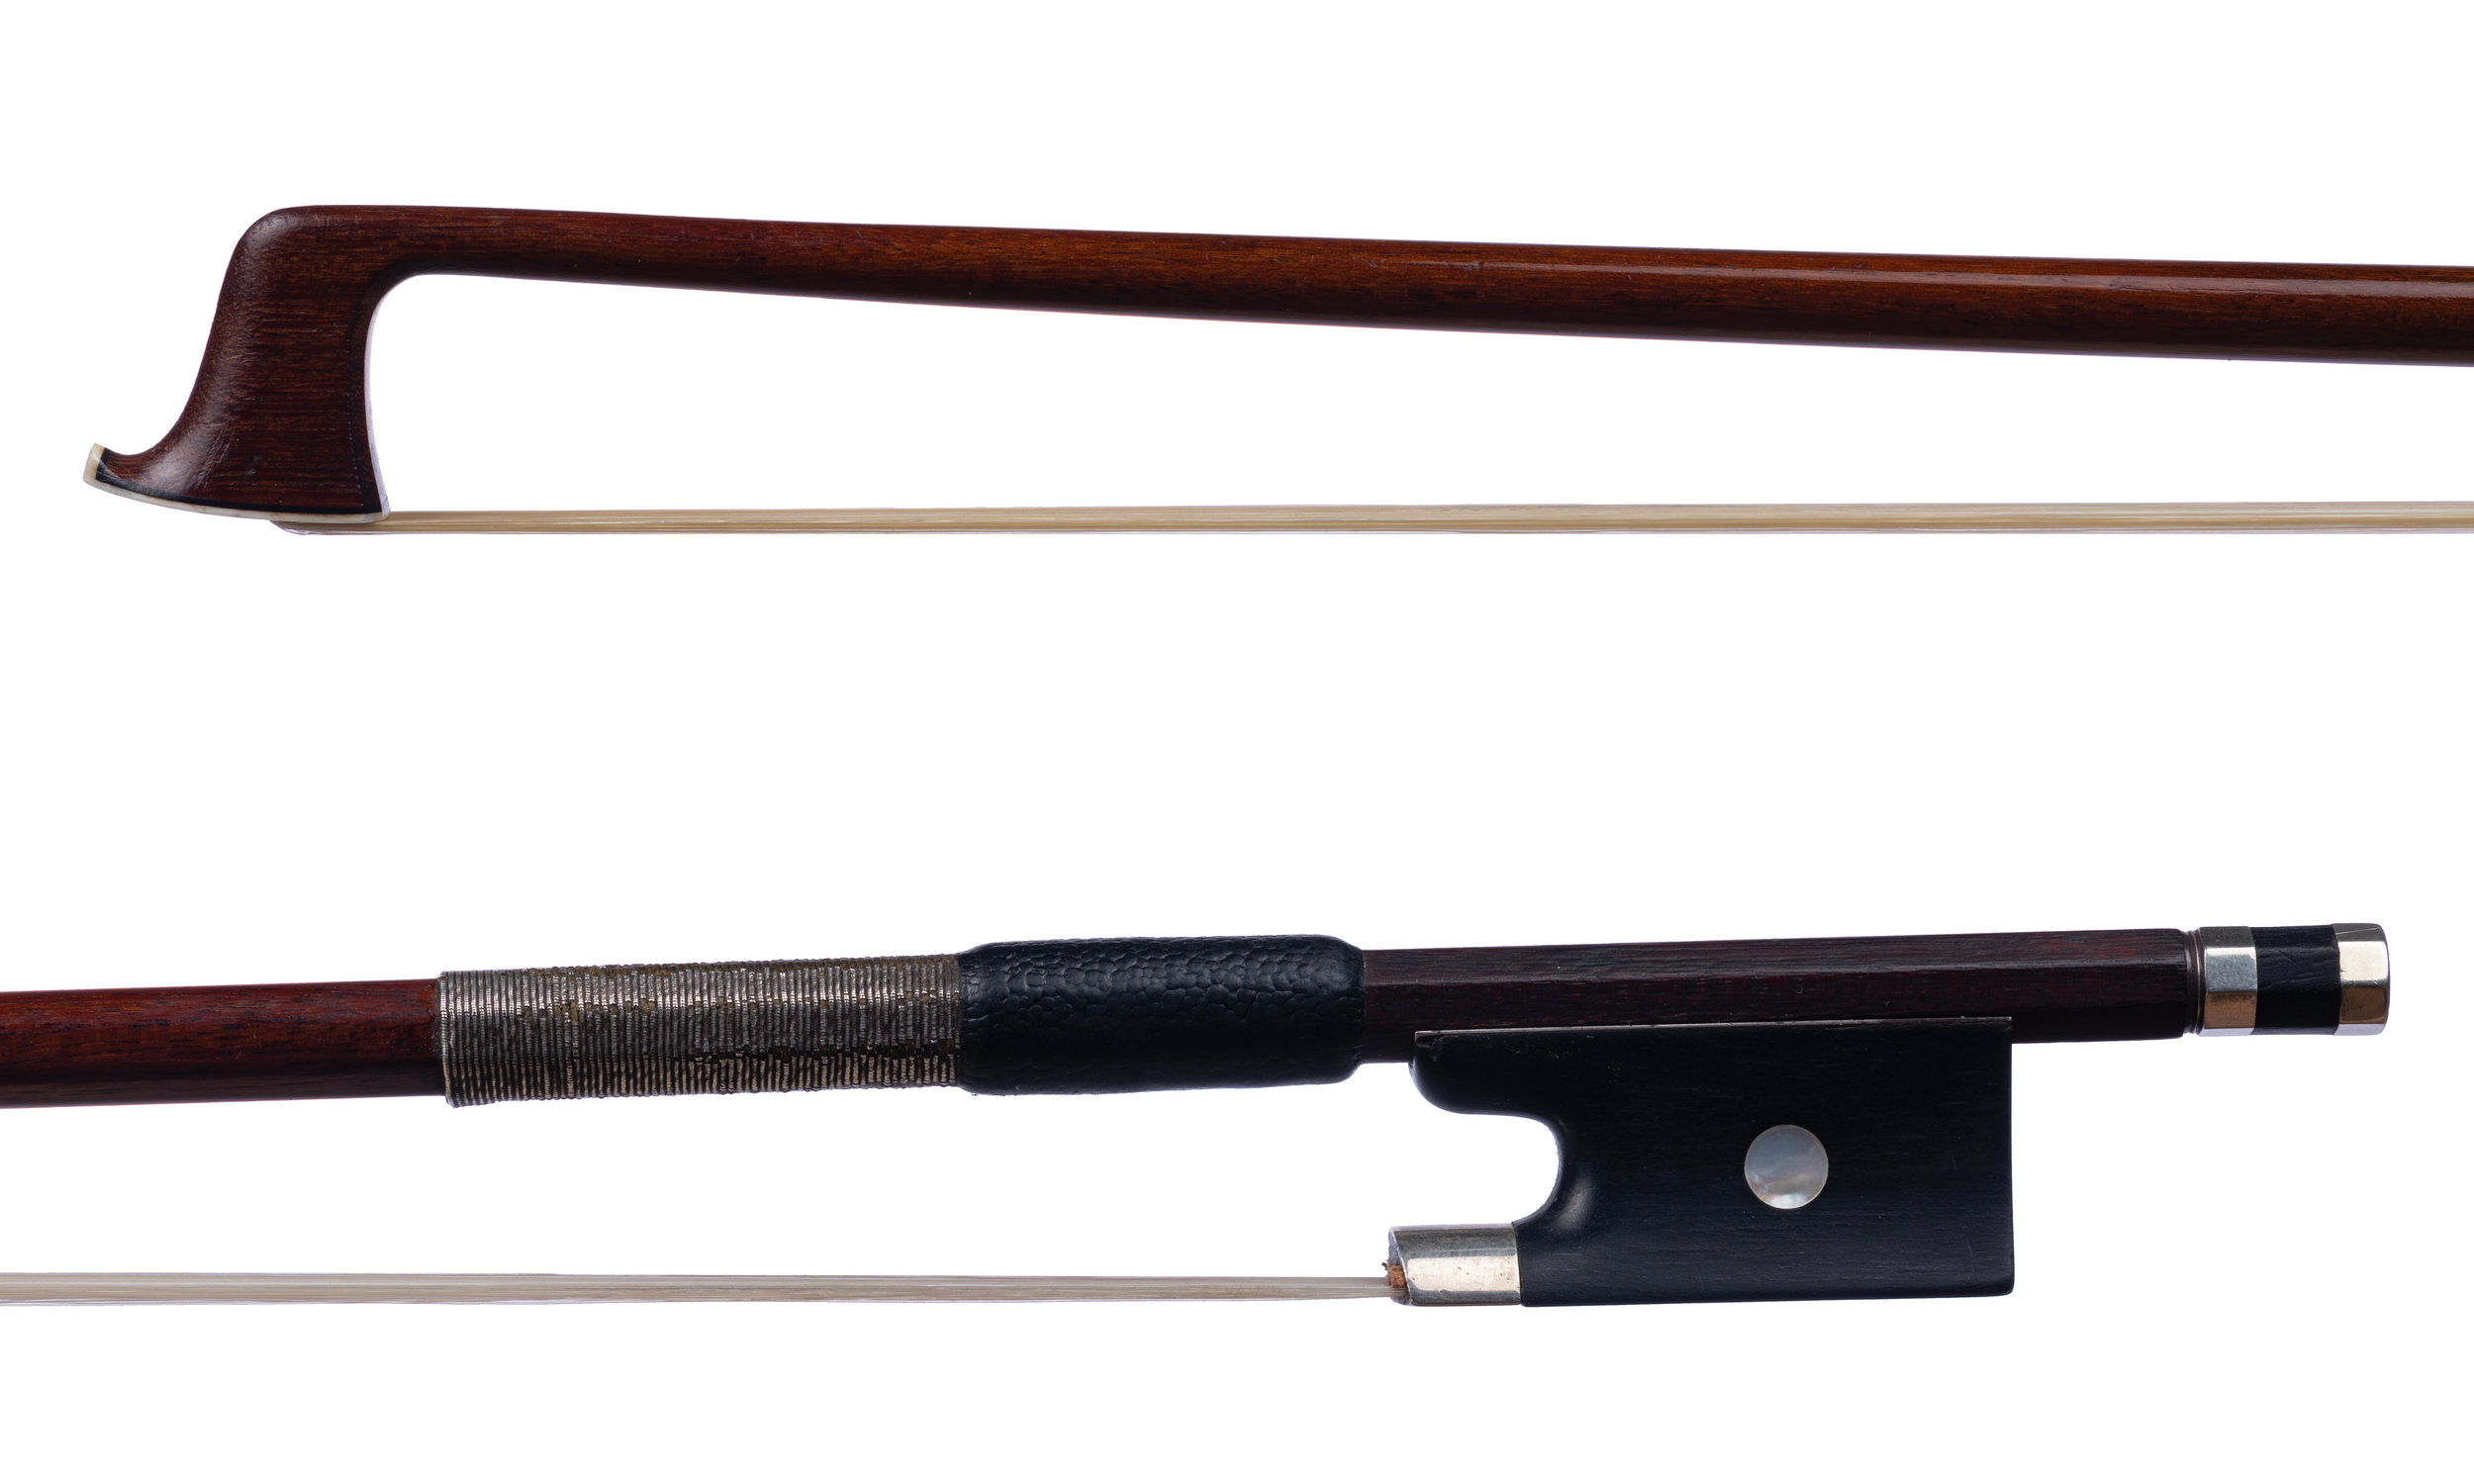 Unstamped German Violin Bow with a tinsel wrap - Silver-mounted ebony frog